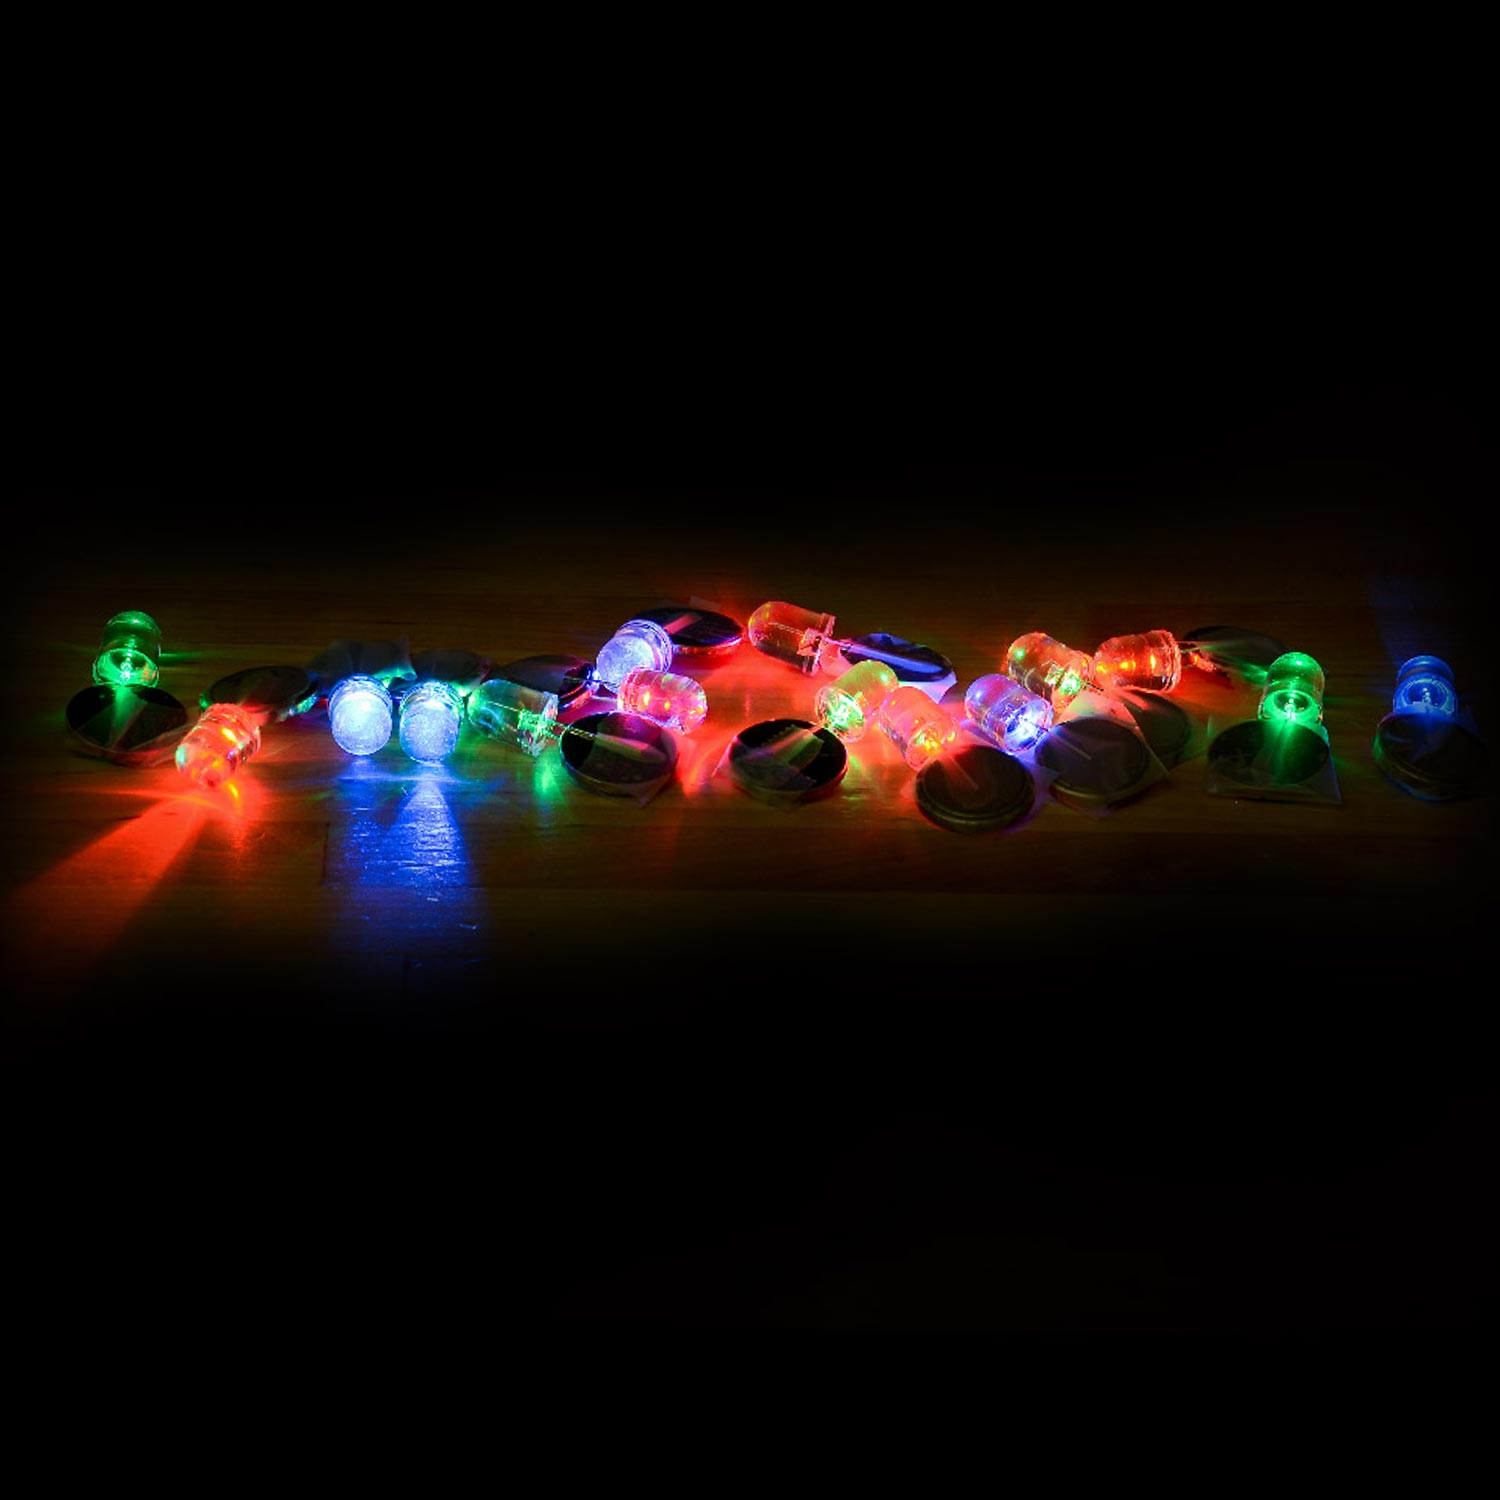 10mm LED Variety Pack